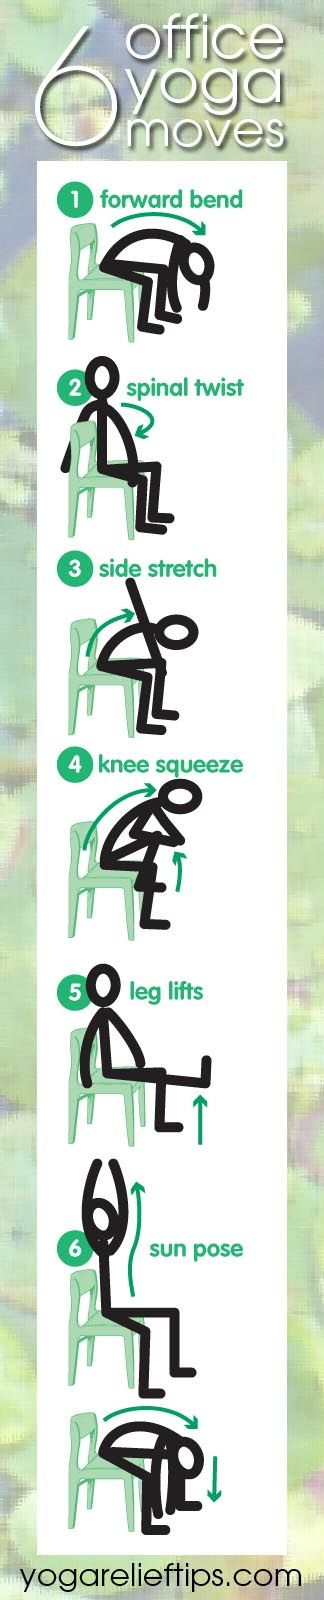 Office Yoga: Easy Chair Yoga Exercises. These Would Be Good To Do After A